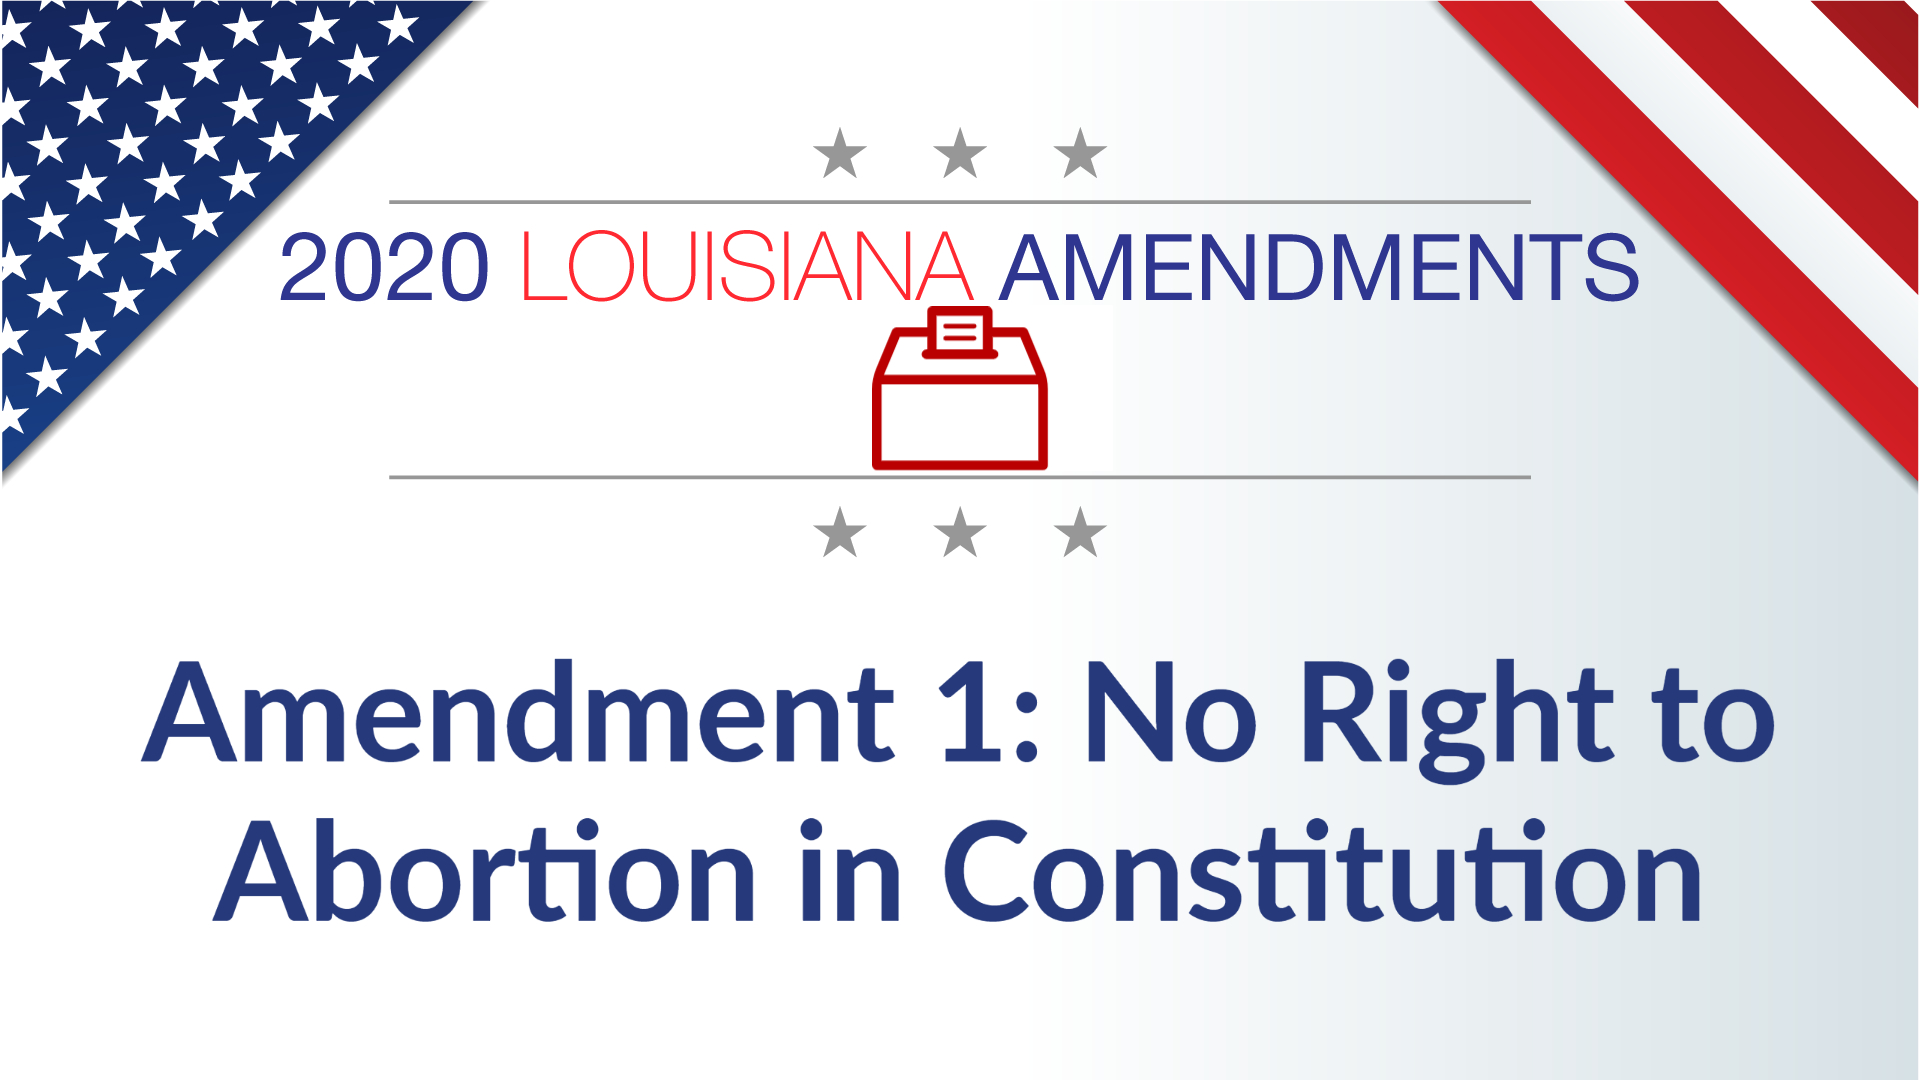 Louisiana Voters Pass Amendment to State Constitution Declaring Abortion Is Not a Right